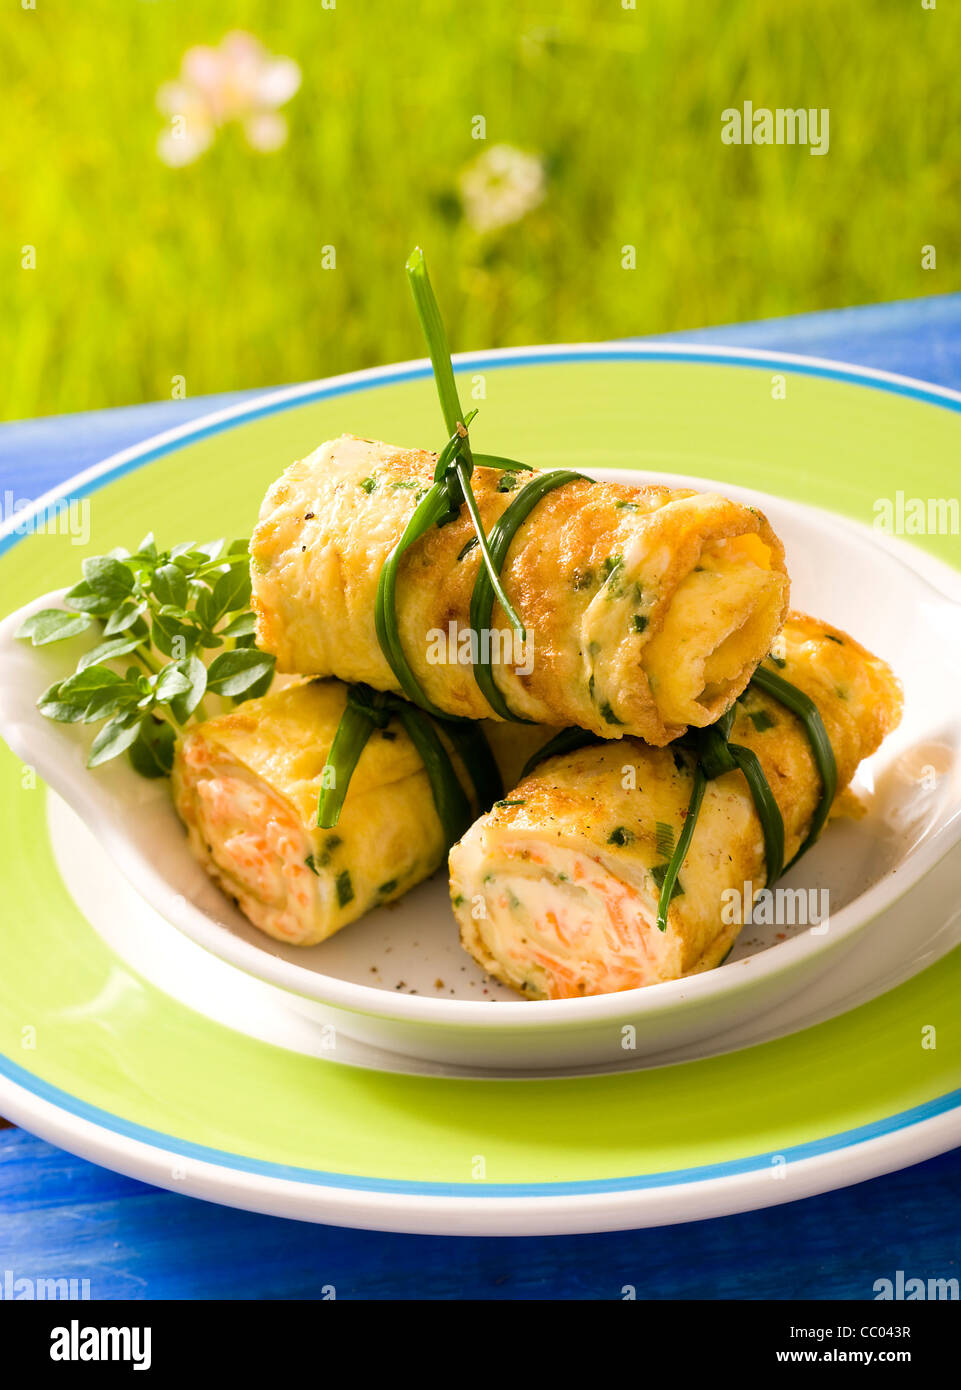 Omelette with Chive - Stock Image